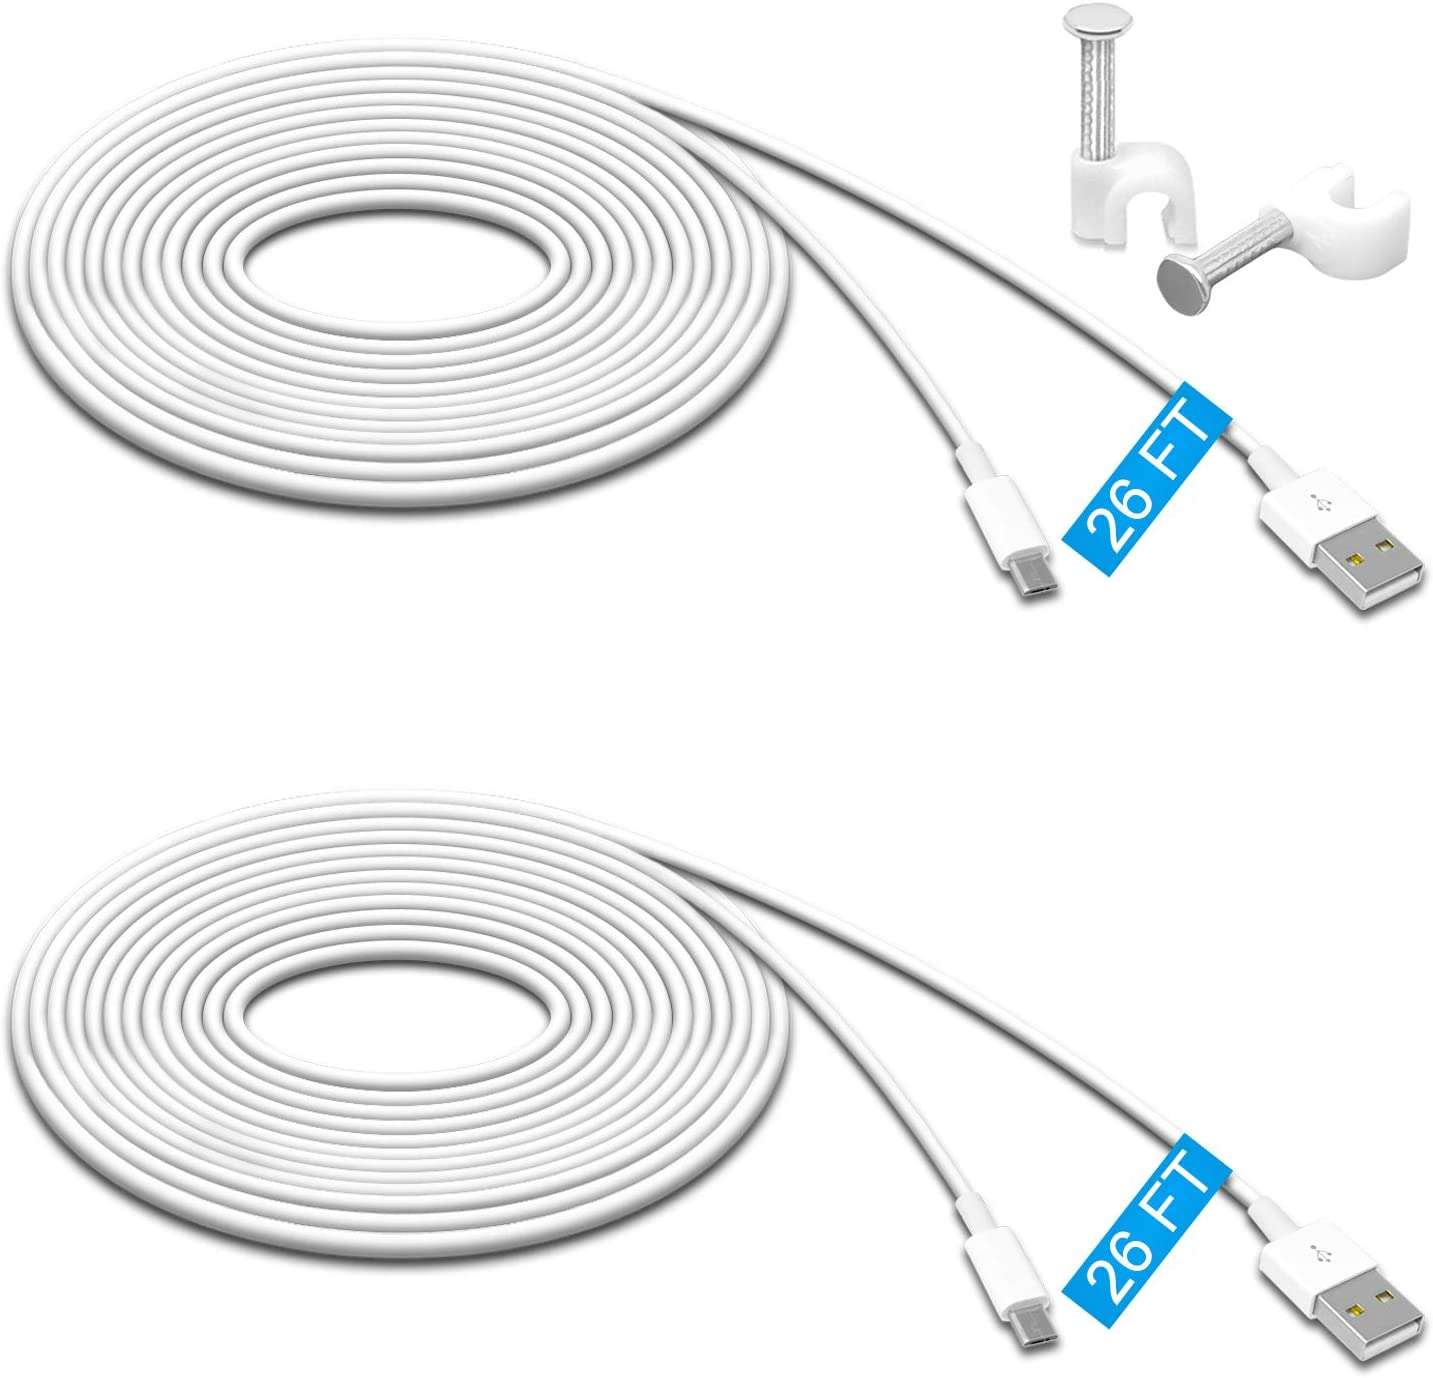 2 Pack 26FT Power Extension Cable for Wyze Cam Pan,WyzeCam,Kasa Cam.YI Dome Home Camera,Furbo Dog,Nest Cam,Oculus Go,Blink,Netvue, Durable Charging and Data Sync Cord for Home Security Camera